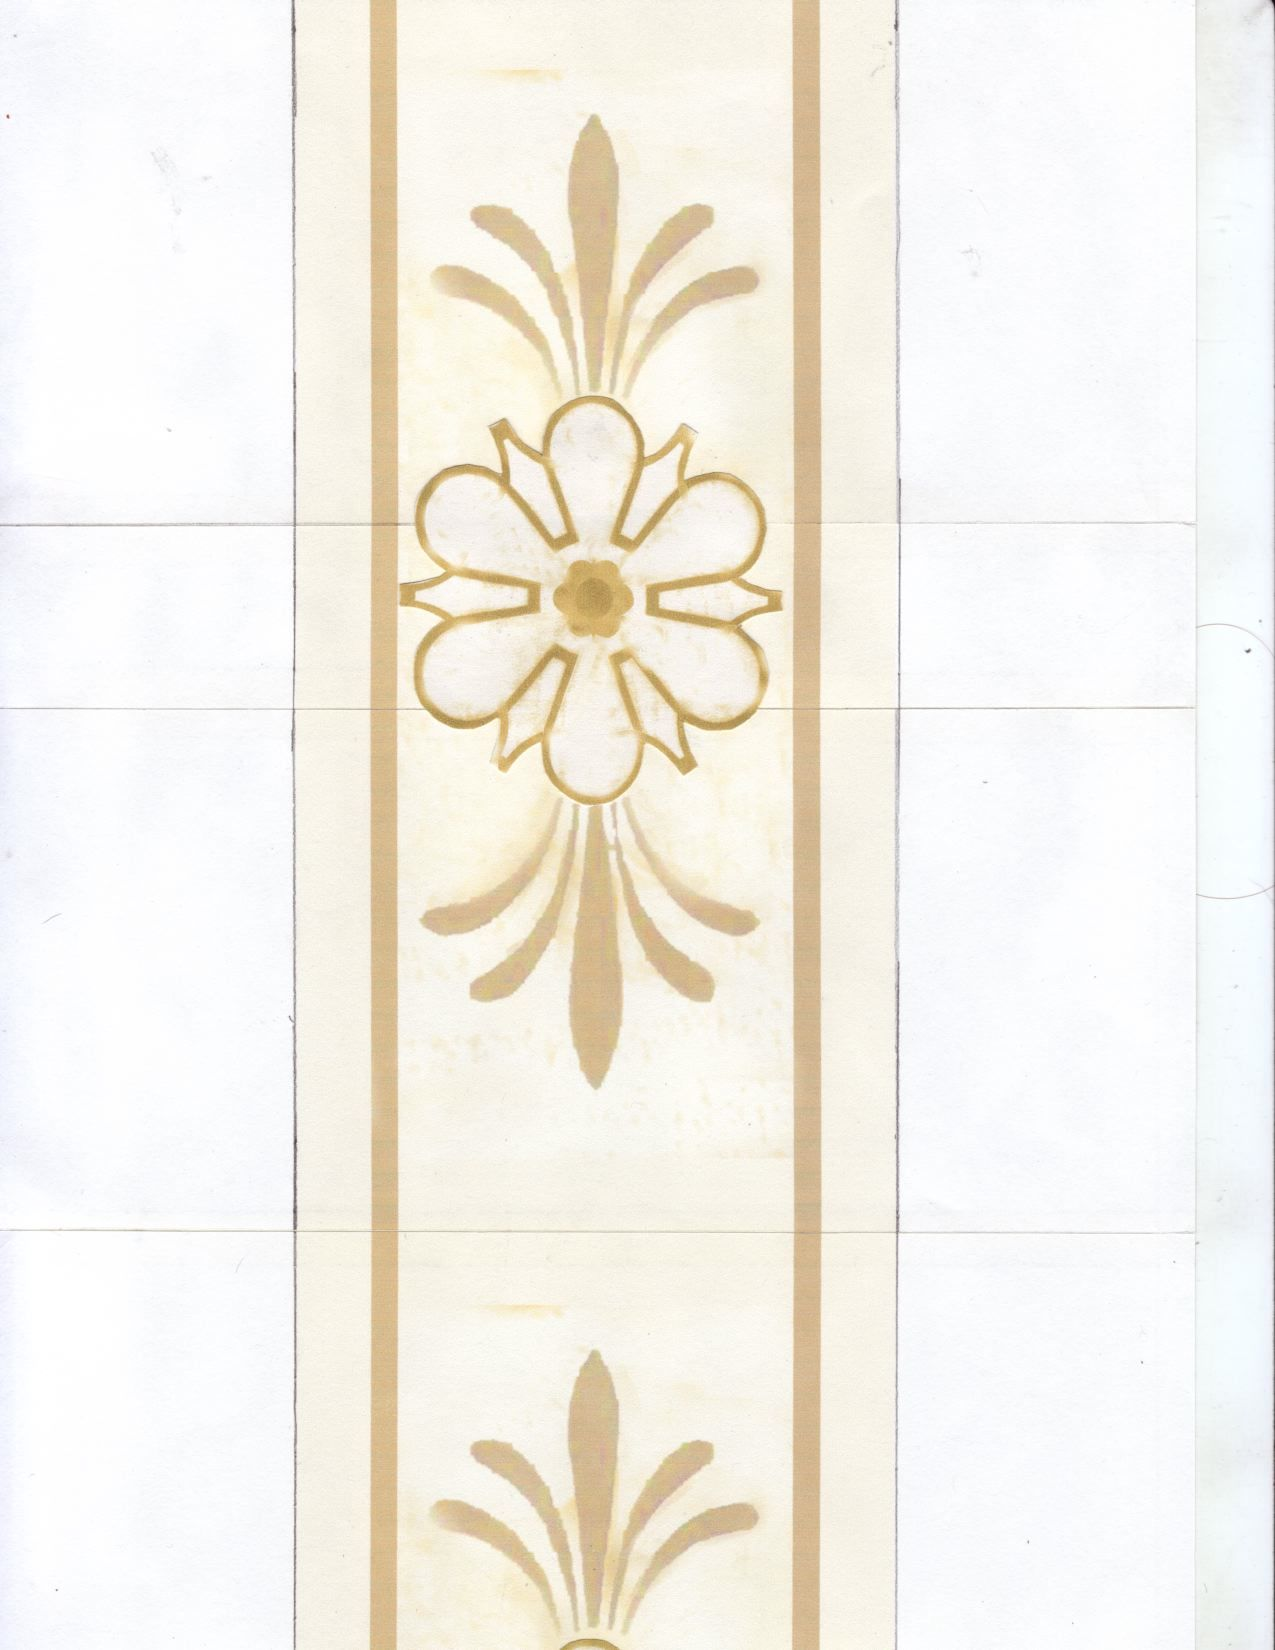 Design for Faux Gilded Door Panel